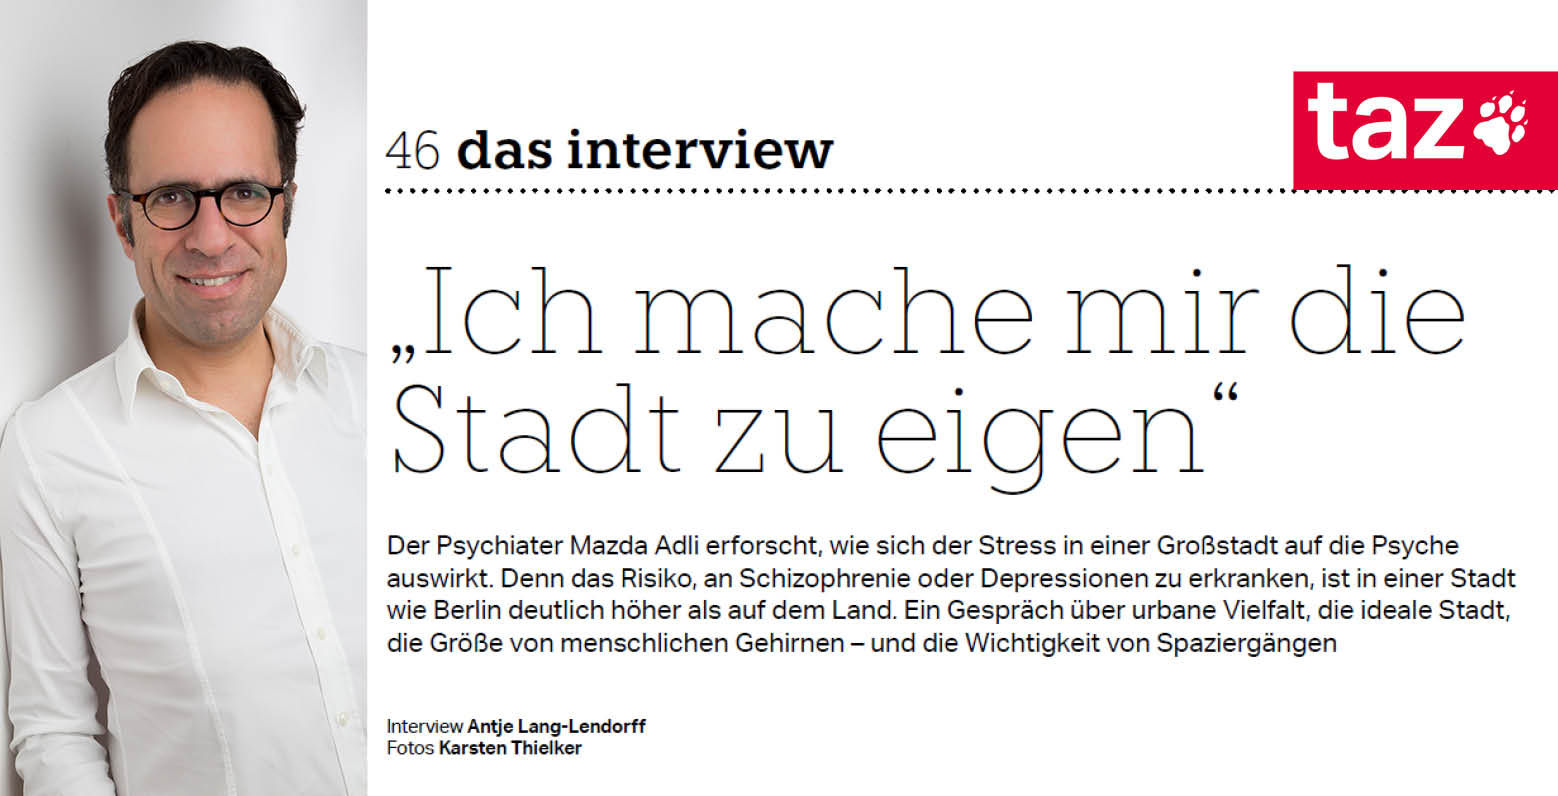 taz. Interview zum Thema Stadtstress